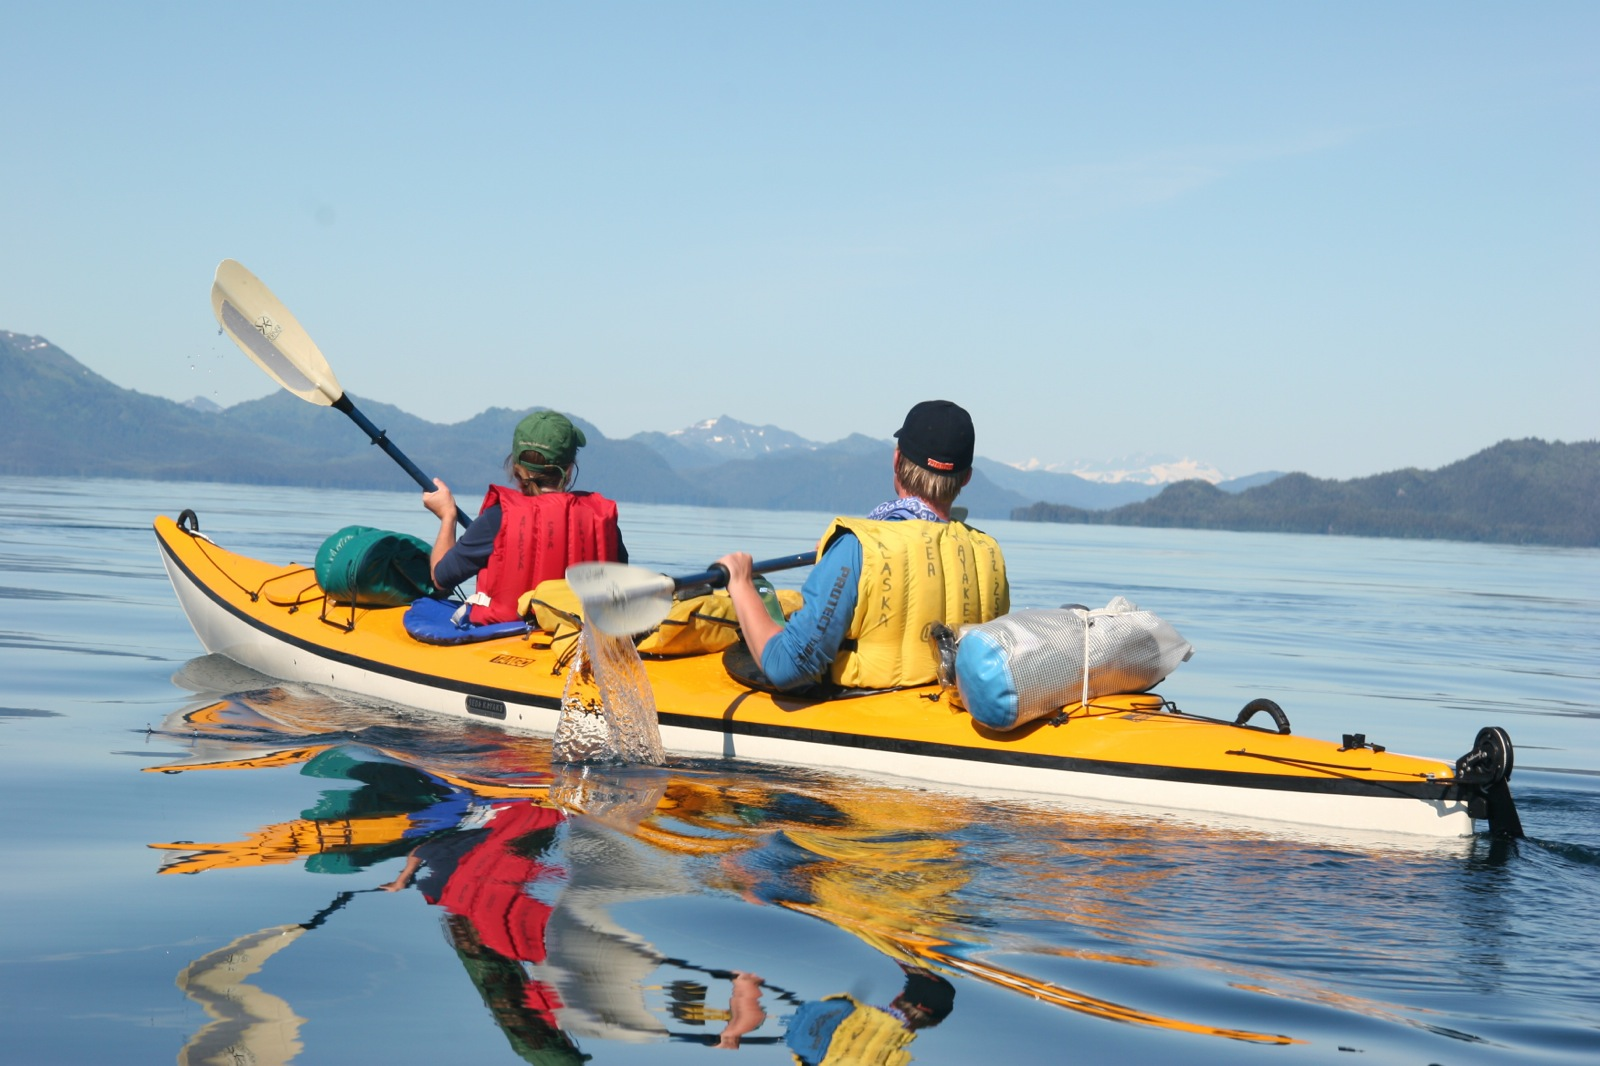 Two People In A Tandem Sea Kayak On The Calm Water Prince William Sound Surrounded